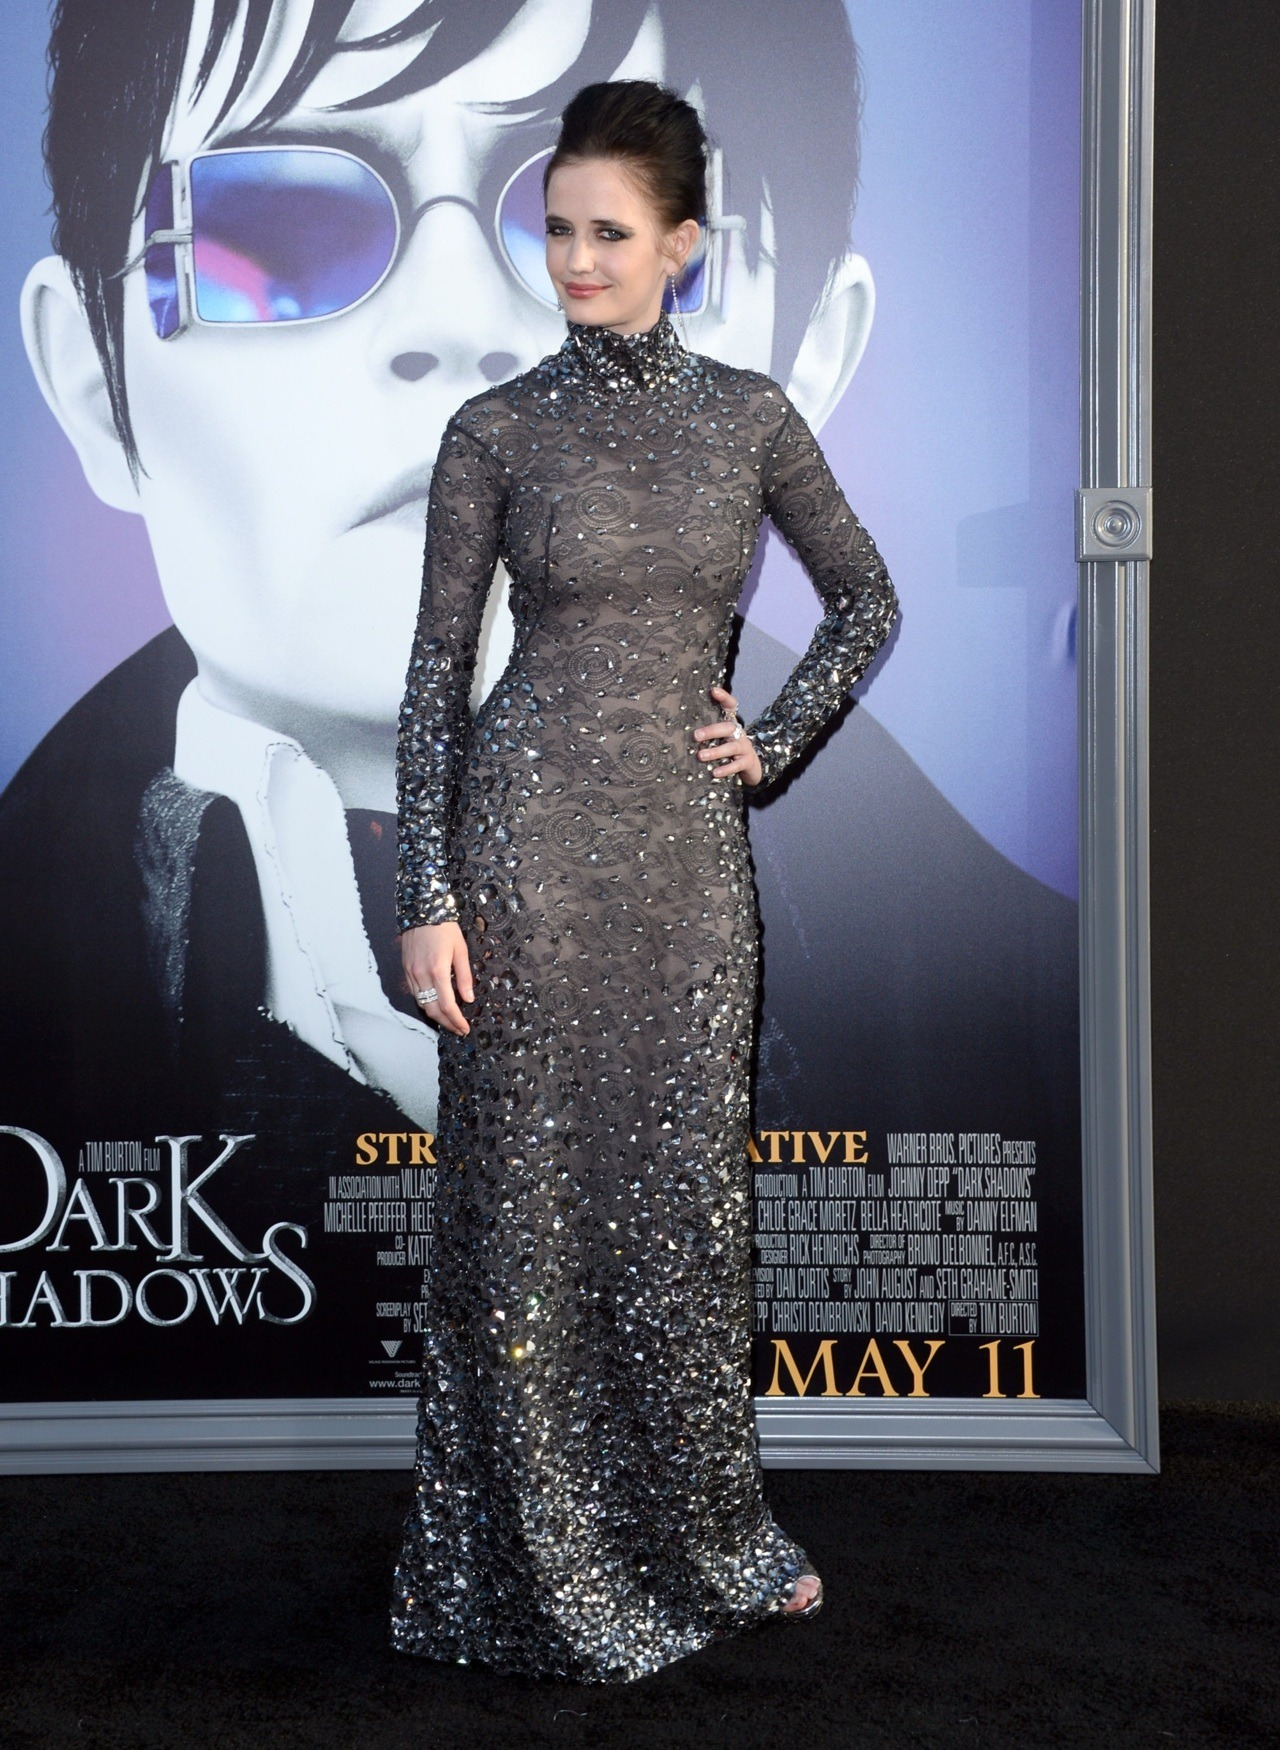 bohemea:  Eva Green - Dark Shadows LA premiere, May 7th 2012 Eva's looking devilish & bewitching in this sleek Tom Ford gown!  Having seen The Avengers twice now, I've likewise viewed the trailer for Dark Shadows, and despite not being a Tim Burton fan, I may well go and see it solely for Eva Green. I'm not ashamed of this. I am ashamed I laughed at the trailer, though. (One of the most obvious gags around & I howled like a drain. Am I getting less jaded in my dotage?)